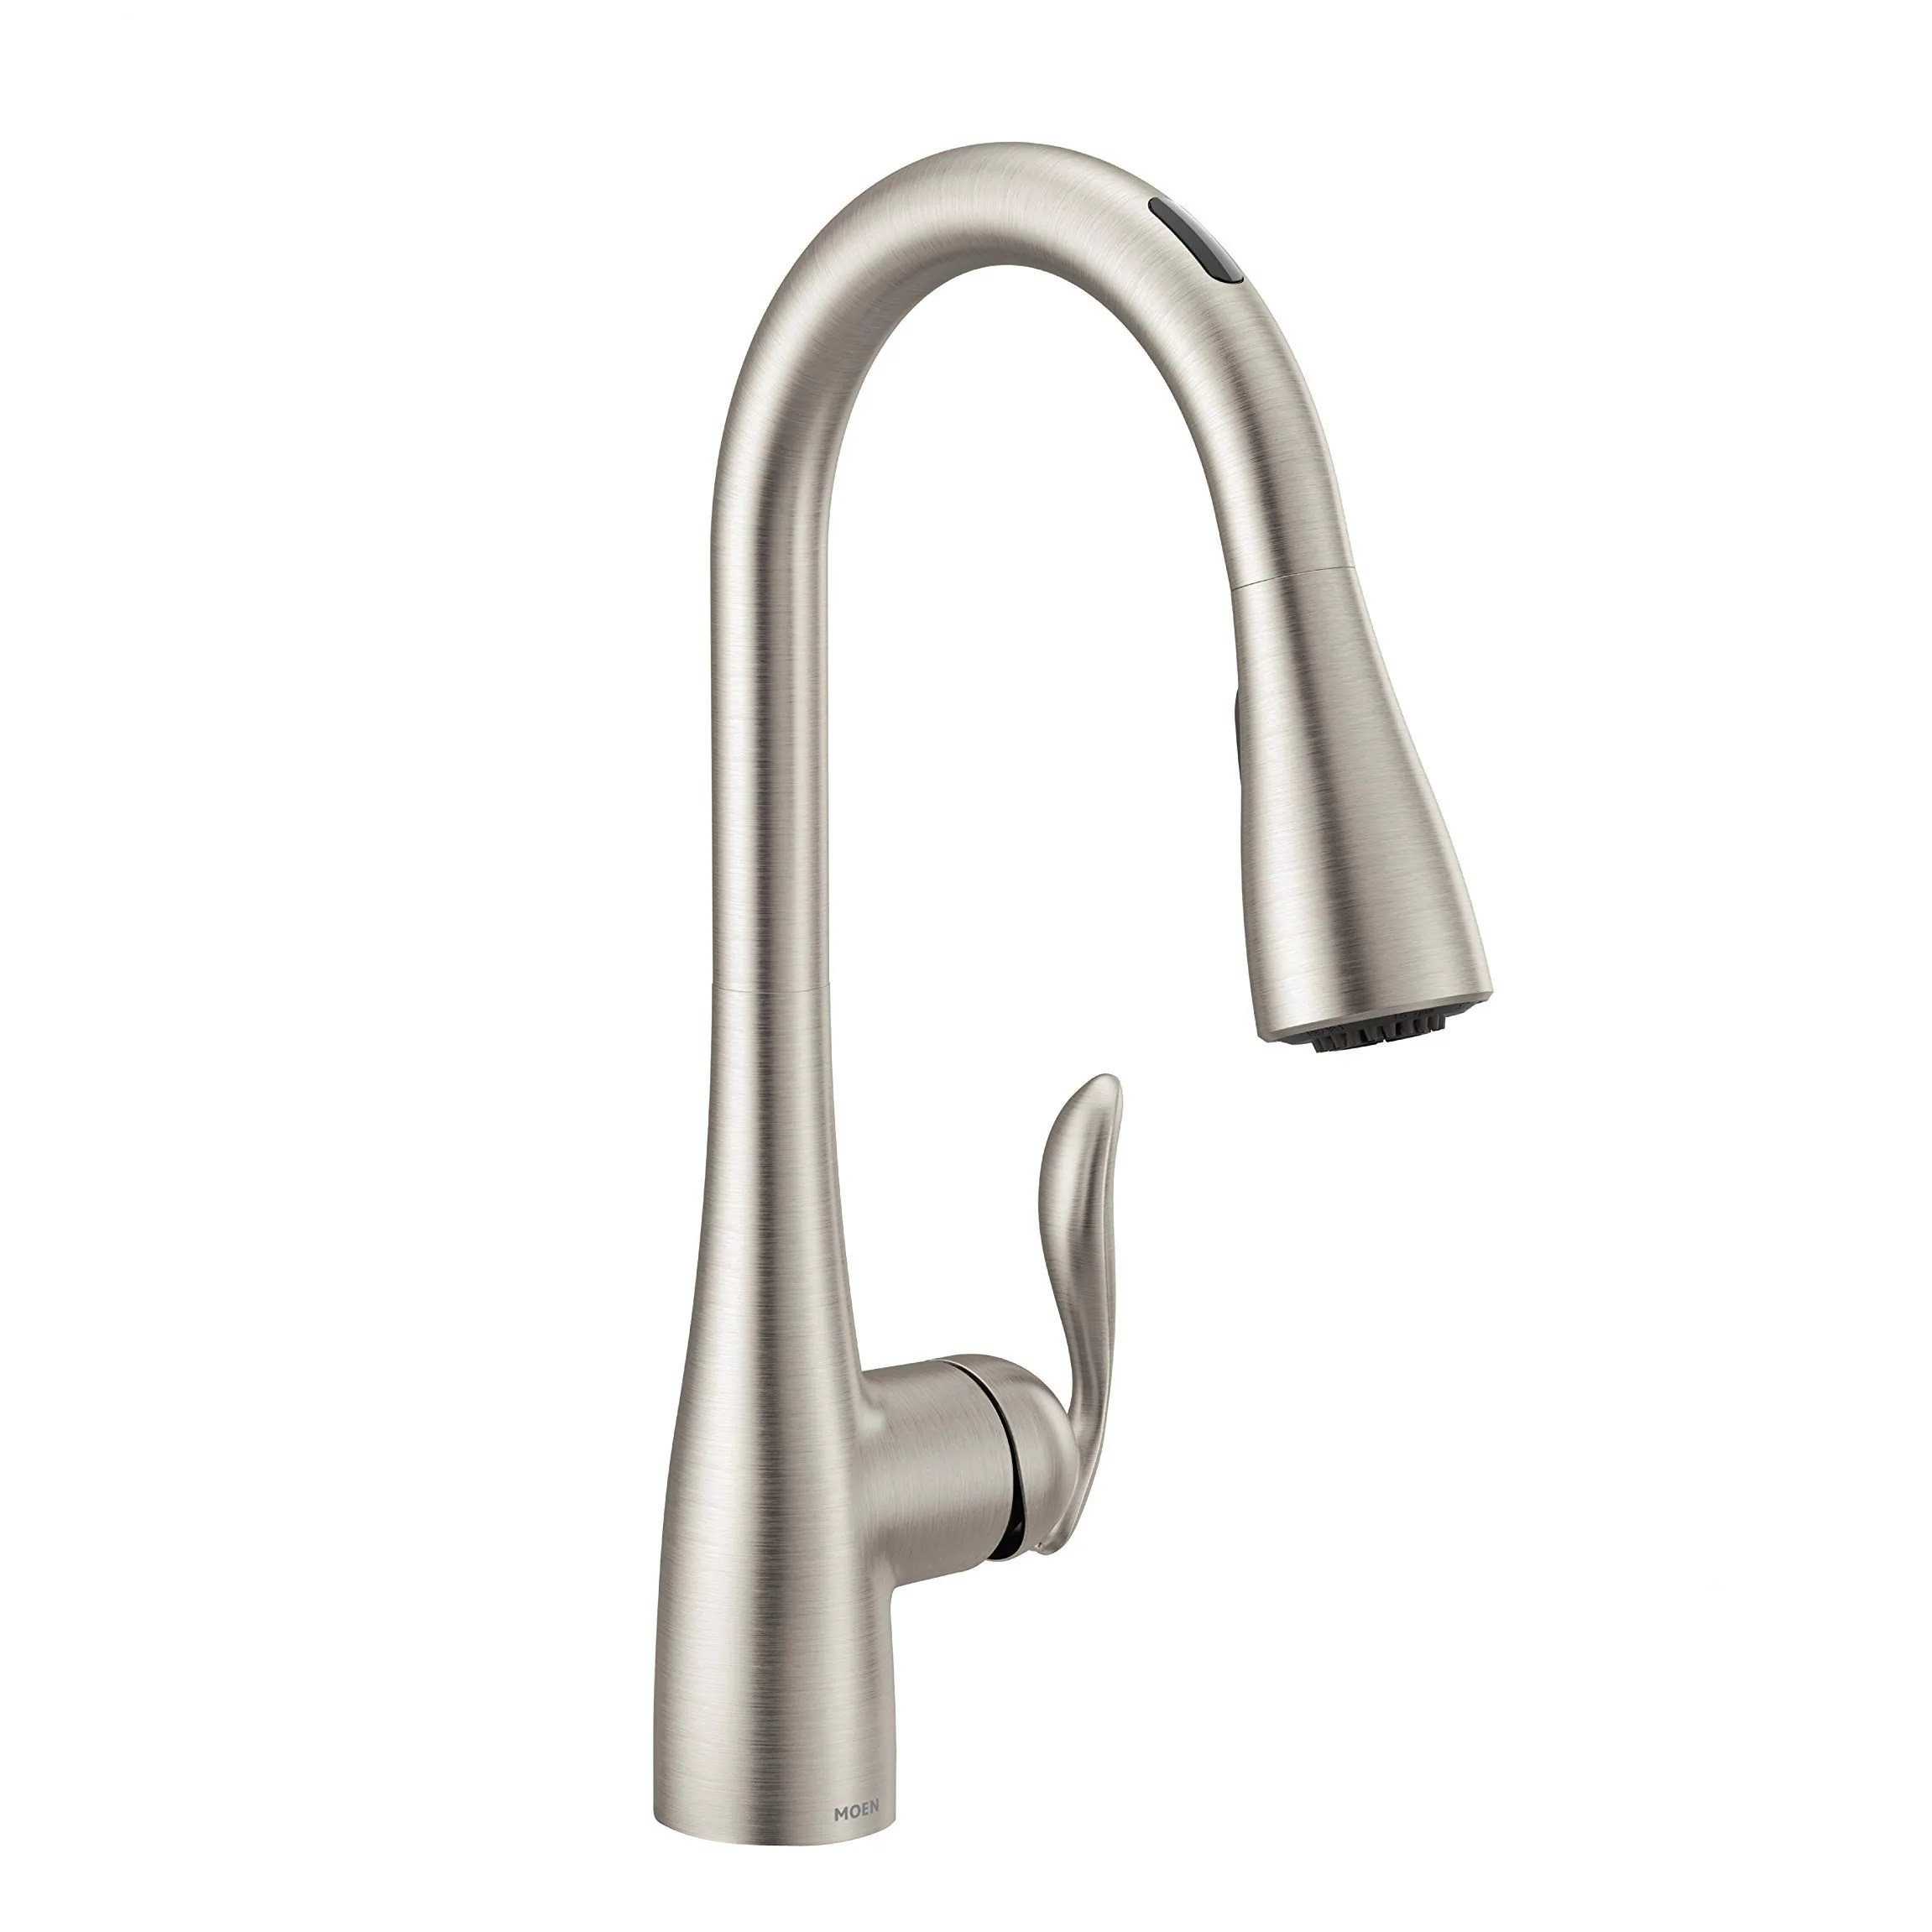 moen 7594evsrs arbor u by moen smart pulldown kitchen faucet with voice control and motionsense spot resist stainless